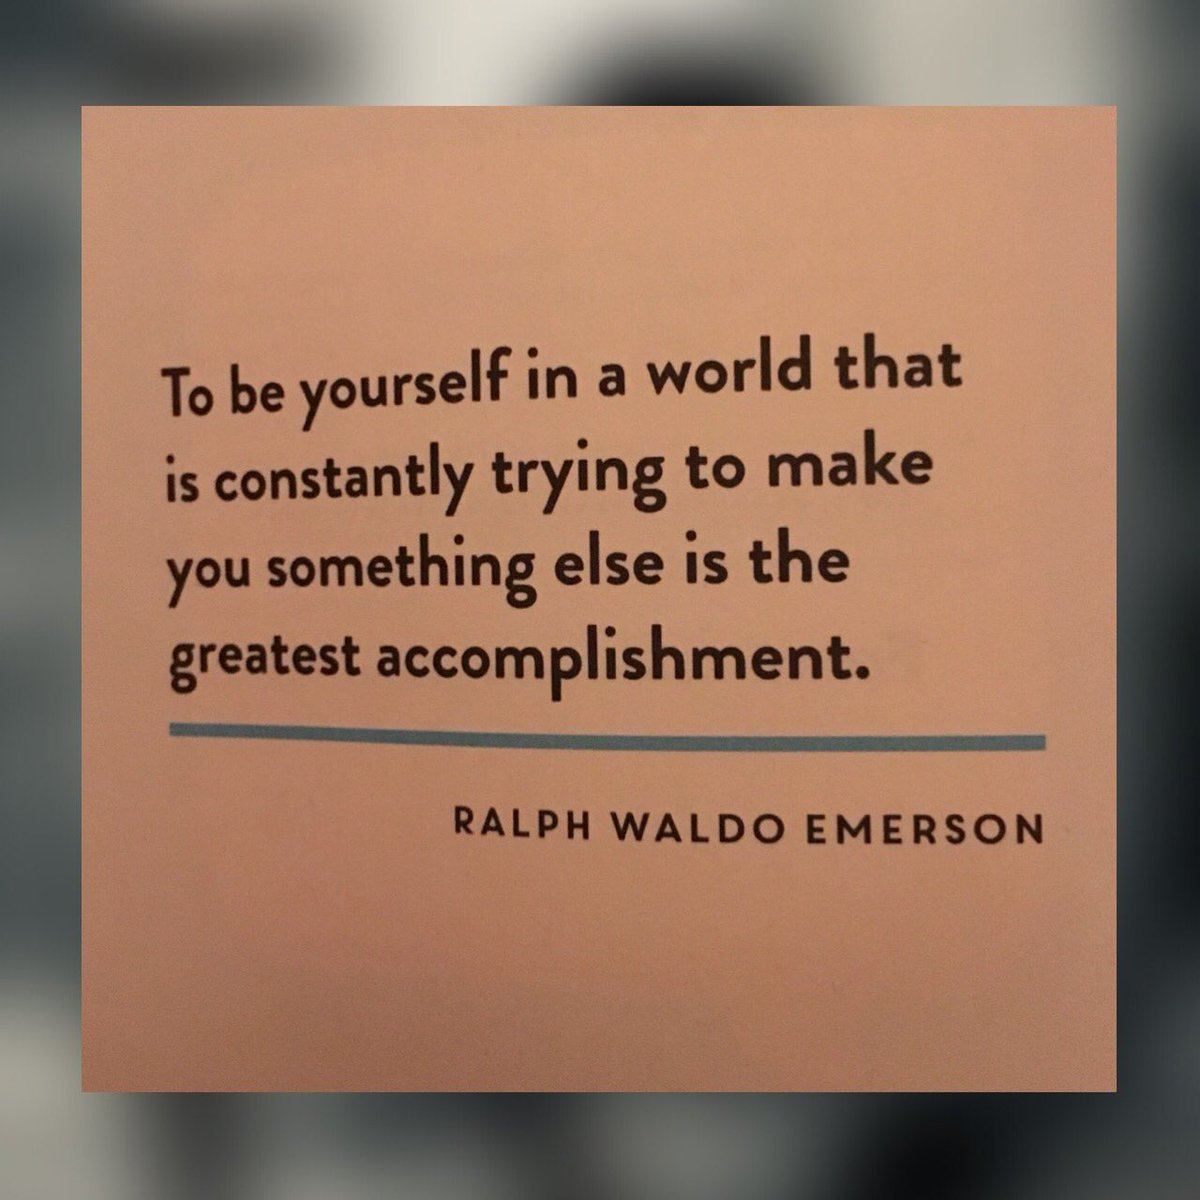 To be yourself in a world that in constantly trying to make you something else is the greatest accomplishment. - Ralph Waldo Emerson